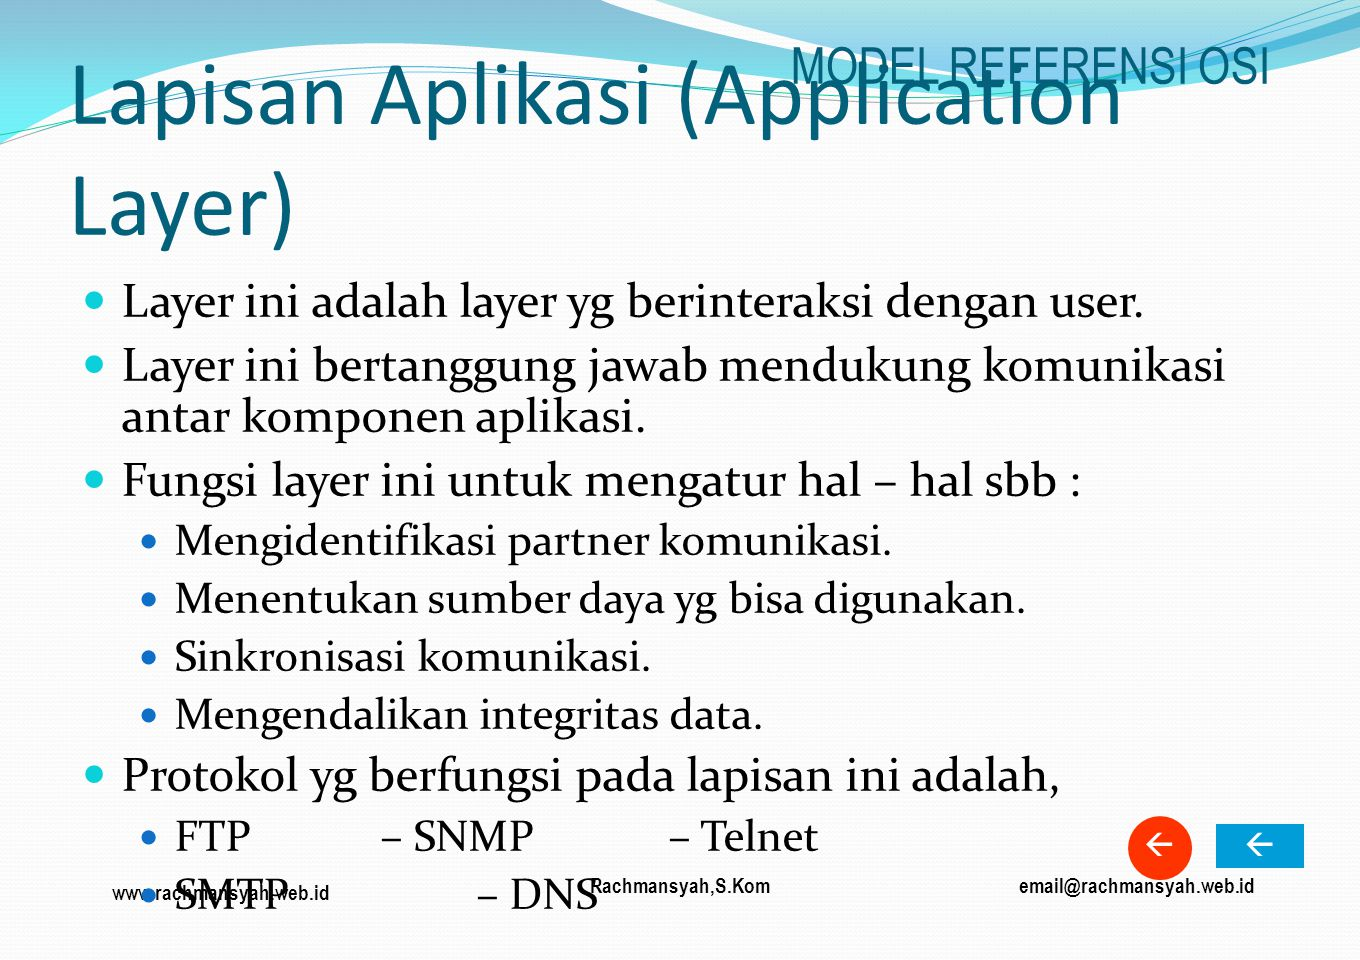 Lapisan Aplikasi (Application Layer)